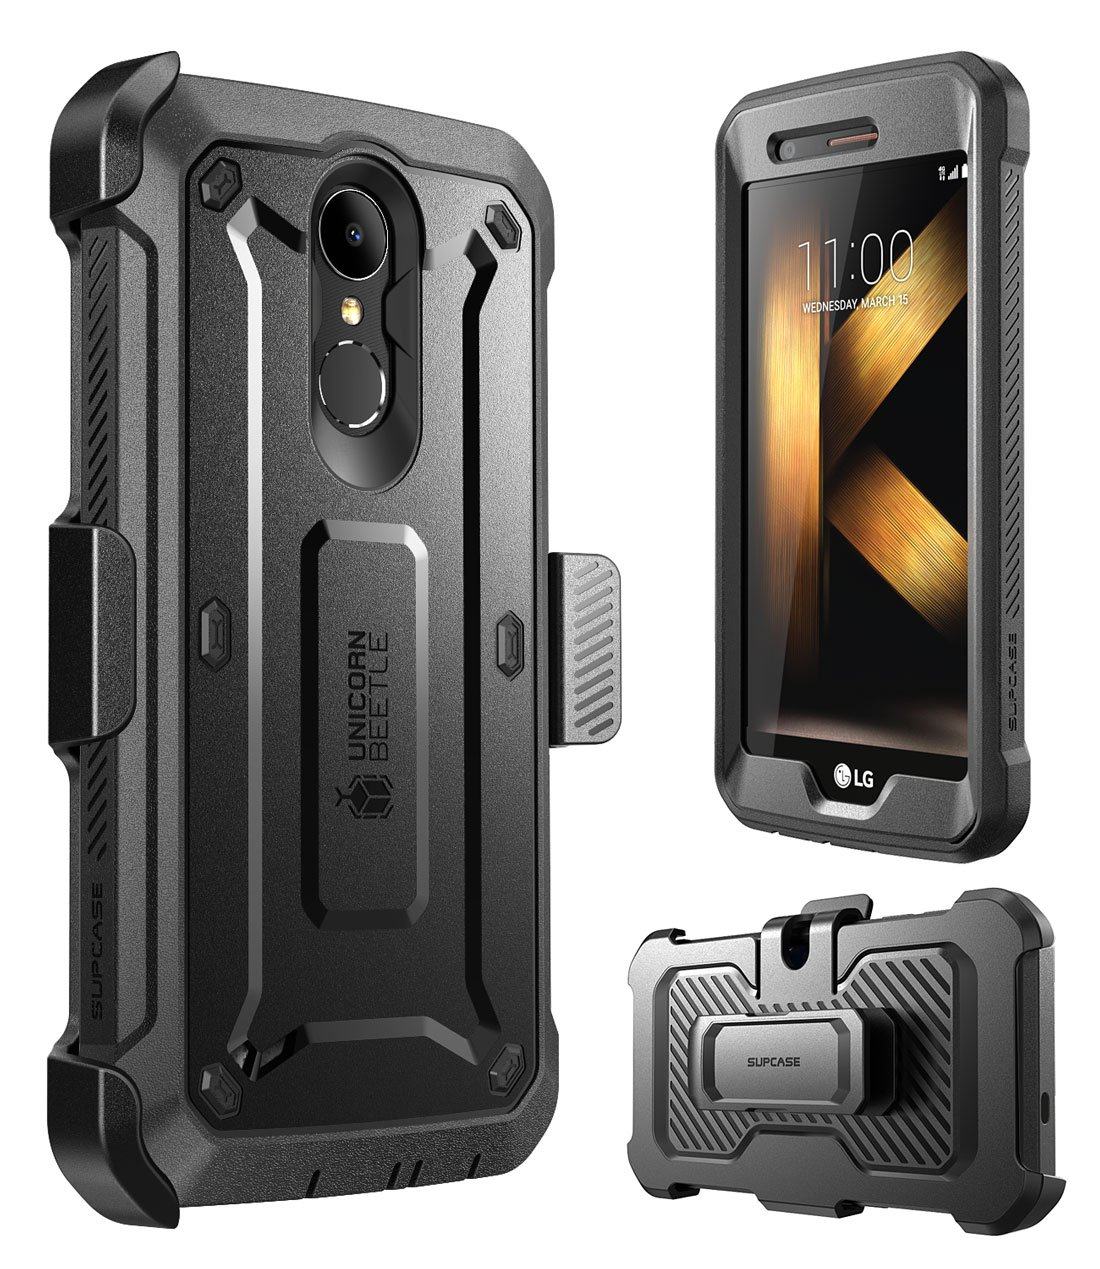 separation shoes 15004 2abc5 Details about For LG K20 Plus Case, SUPCASE UB PRO Rugged Holster Cover  with Screen Protector